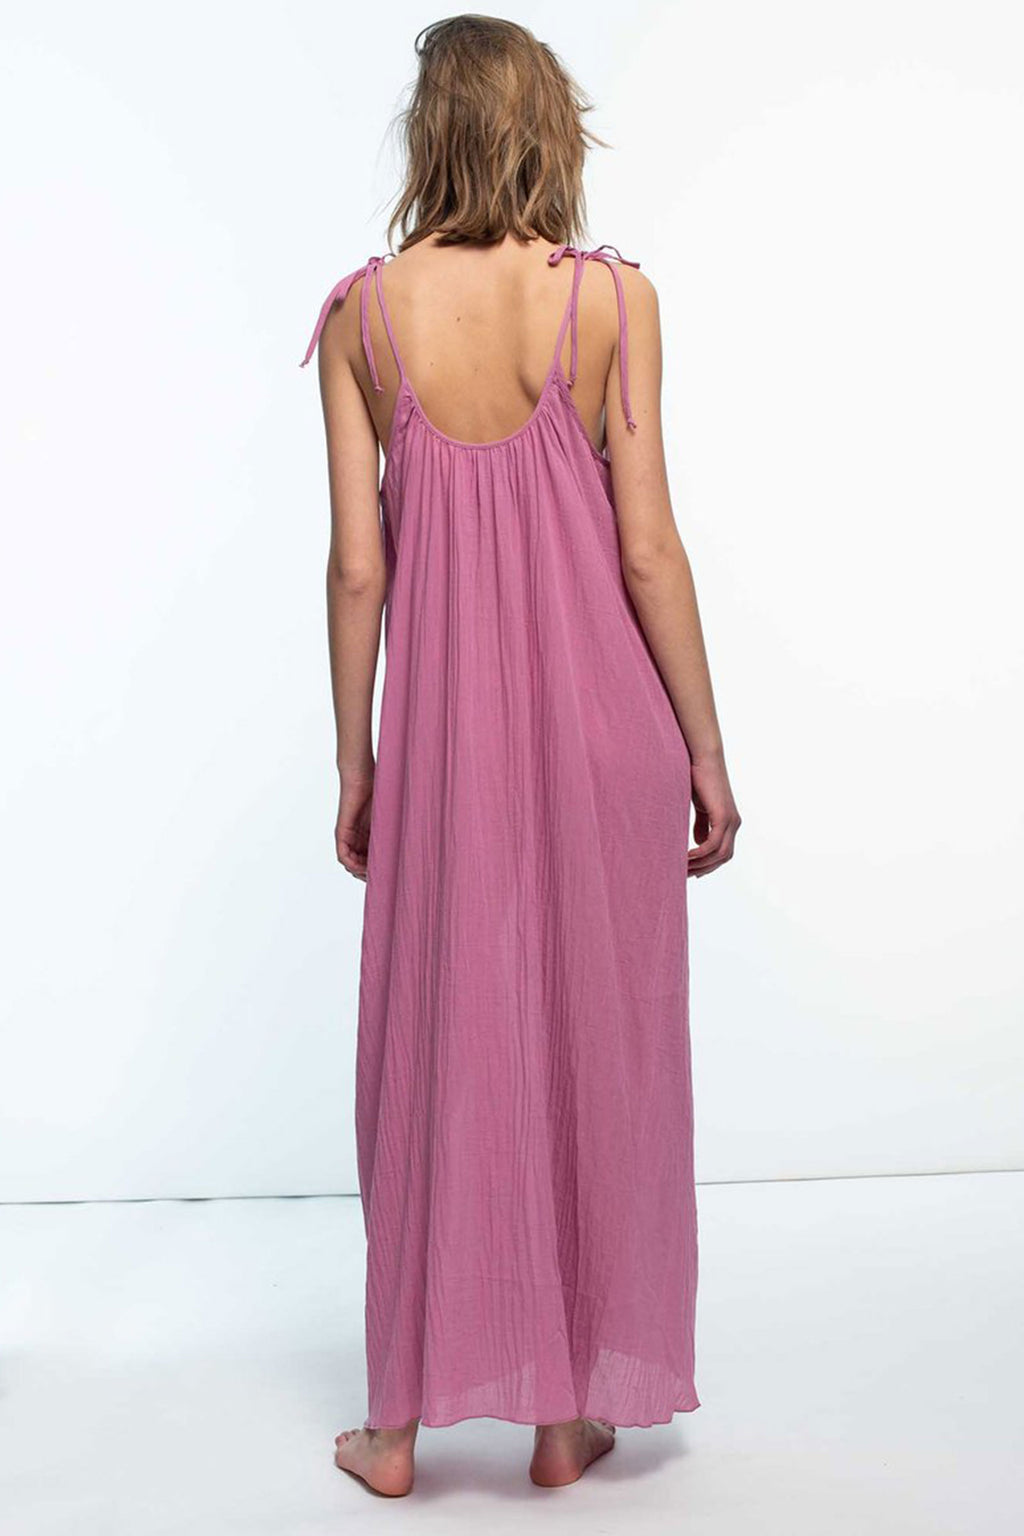 Loup Charmant Maxi Slip Dress in Raspberry